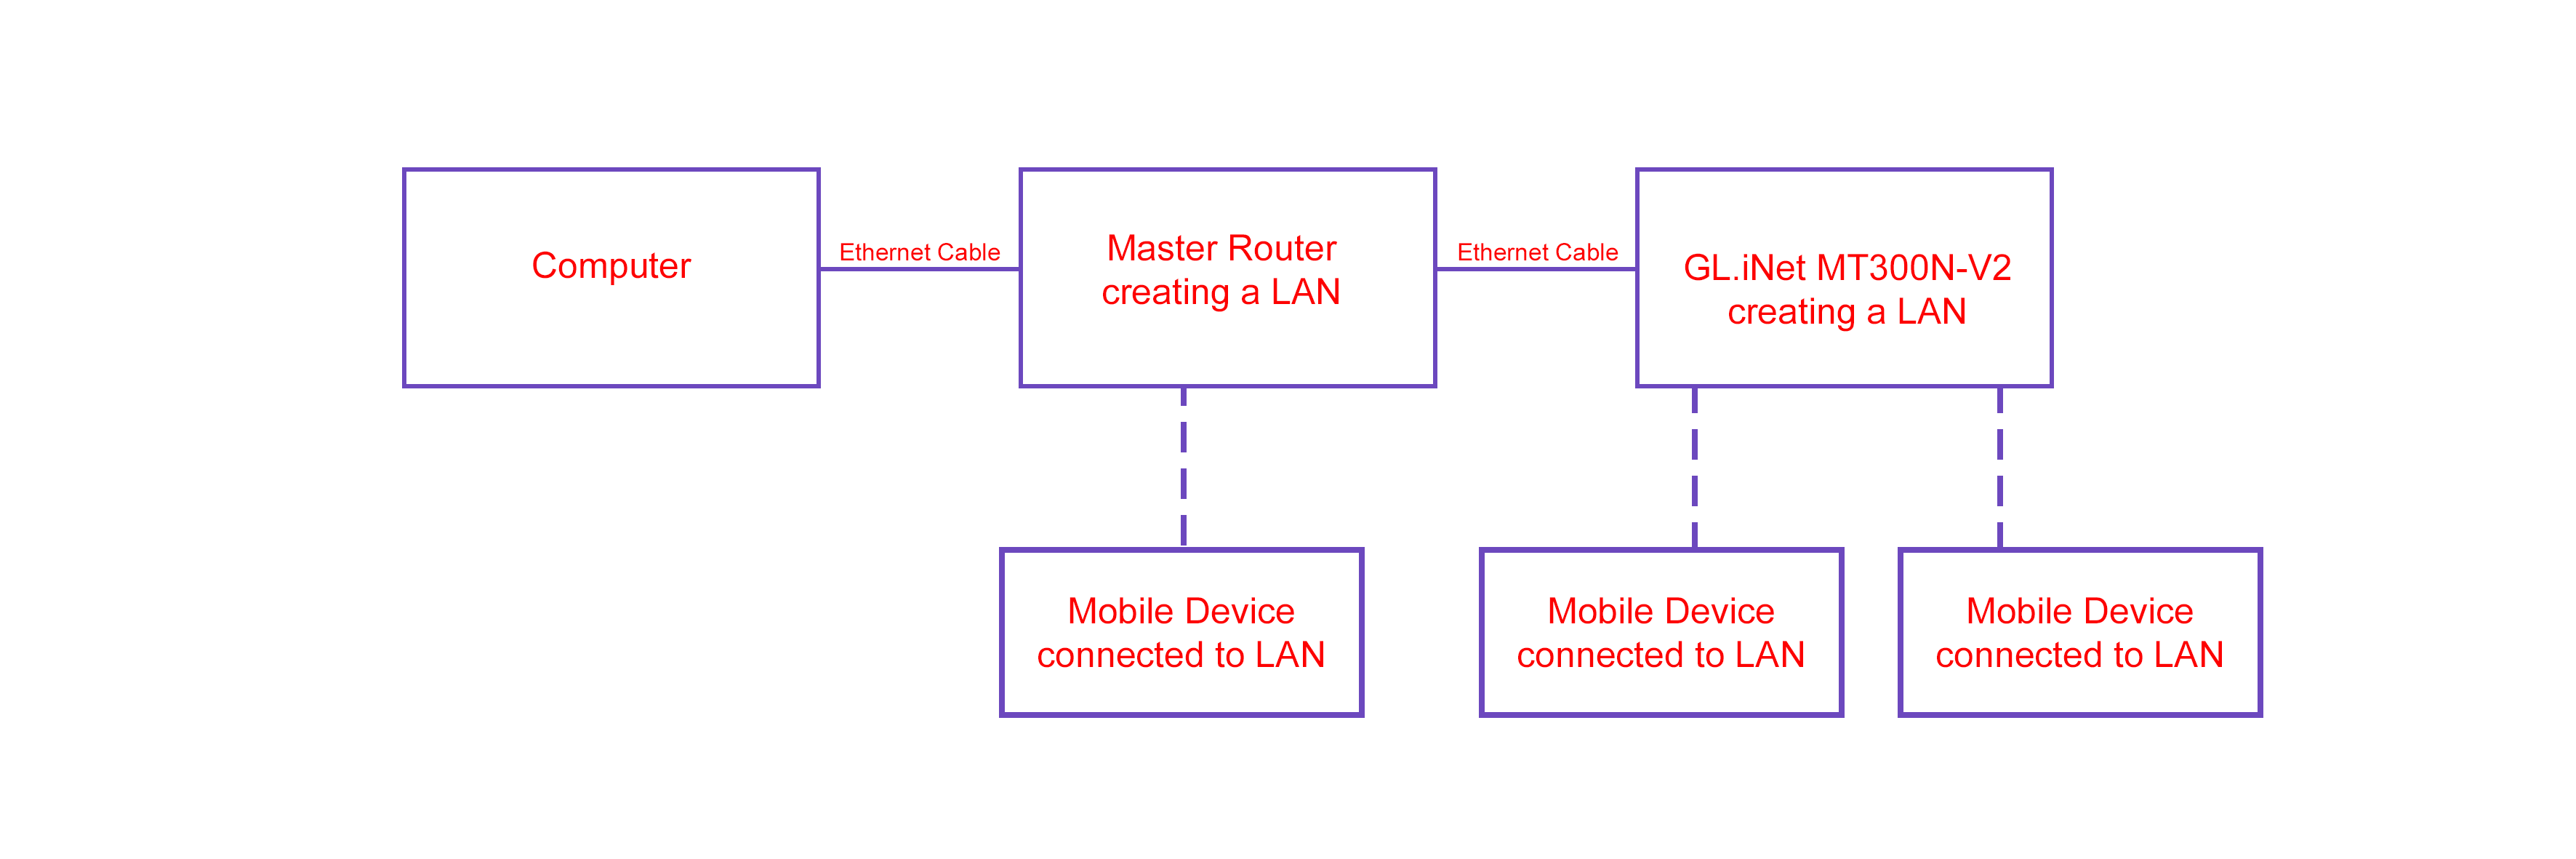 Using MT300N-V2 To Create A Wired Network - general - GL.iNet